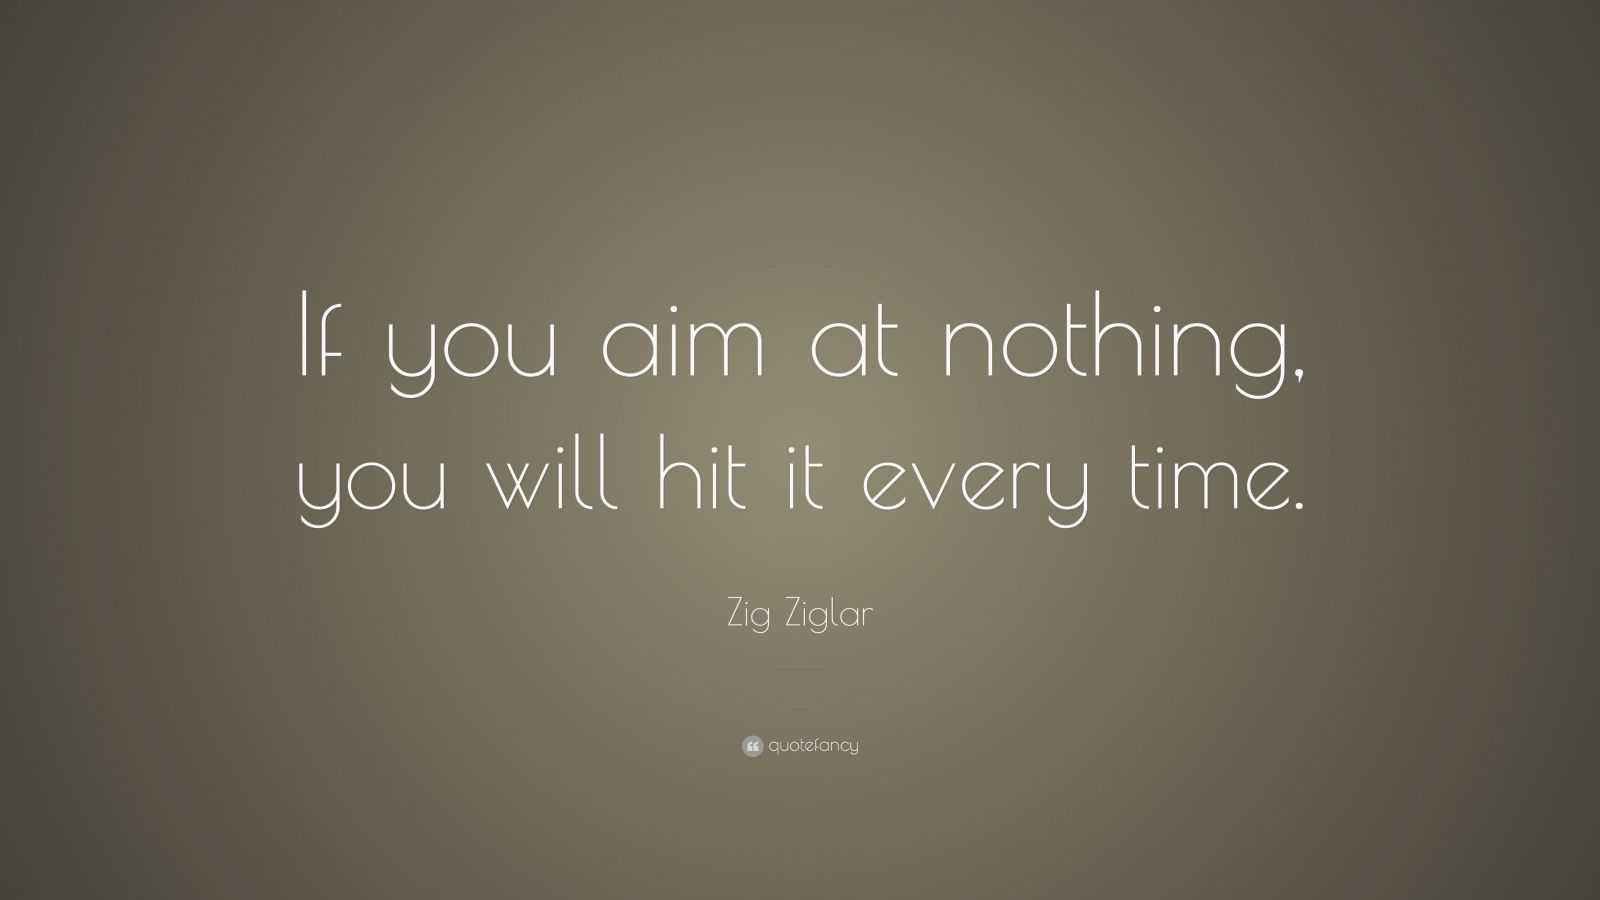 Motivational Life Quotes Wallpapers Zig Ziglar Quote If You Aim At Nothing You Will Hit It